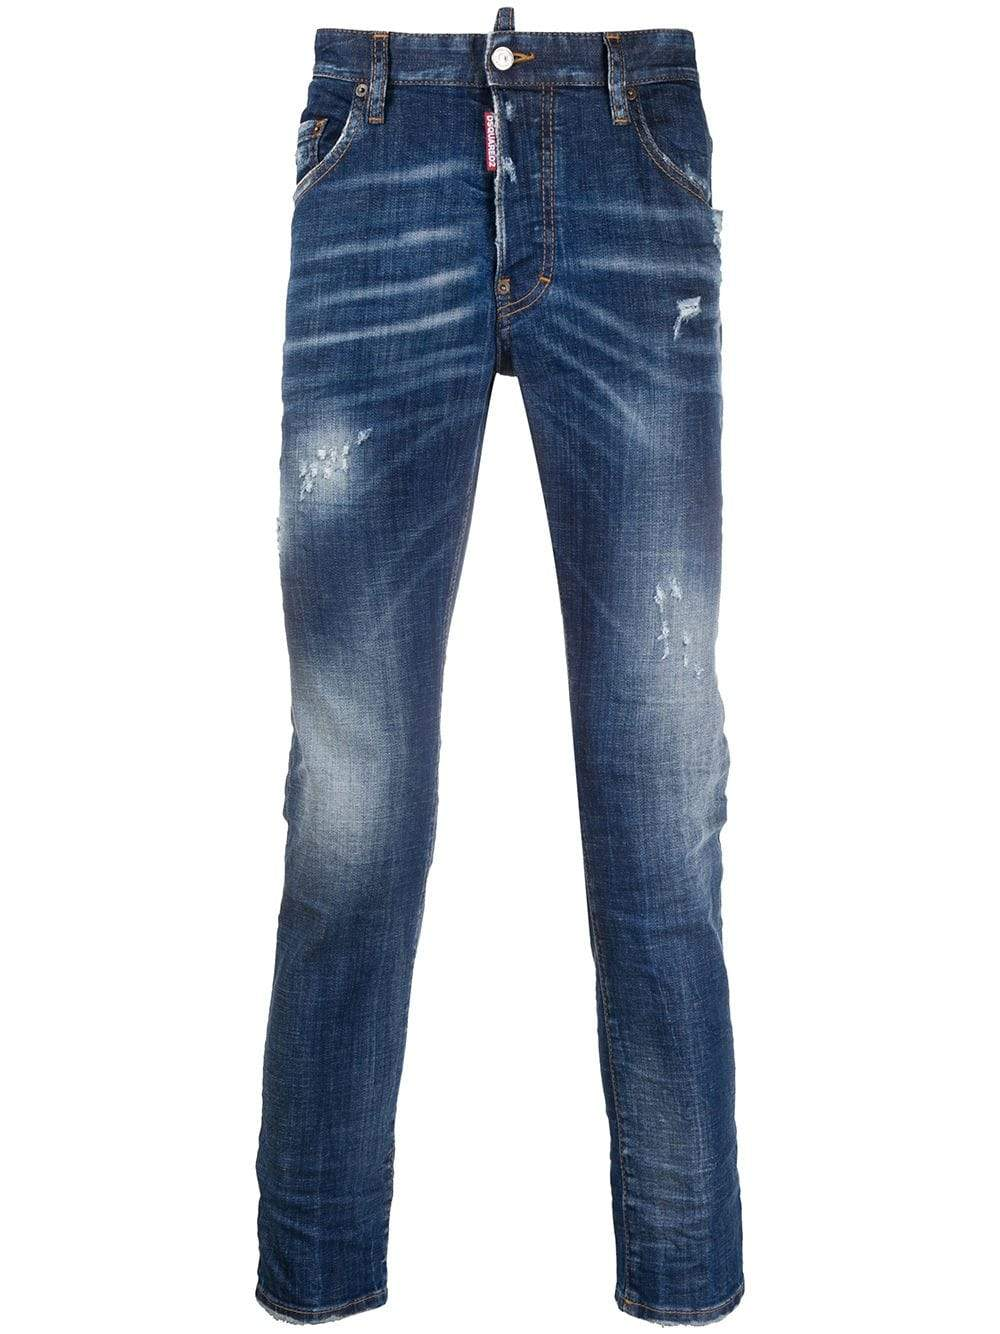 DSQUARED2 Slim Fit High Waist Jeans - Maison De Fashion